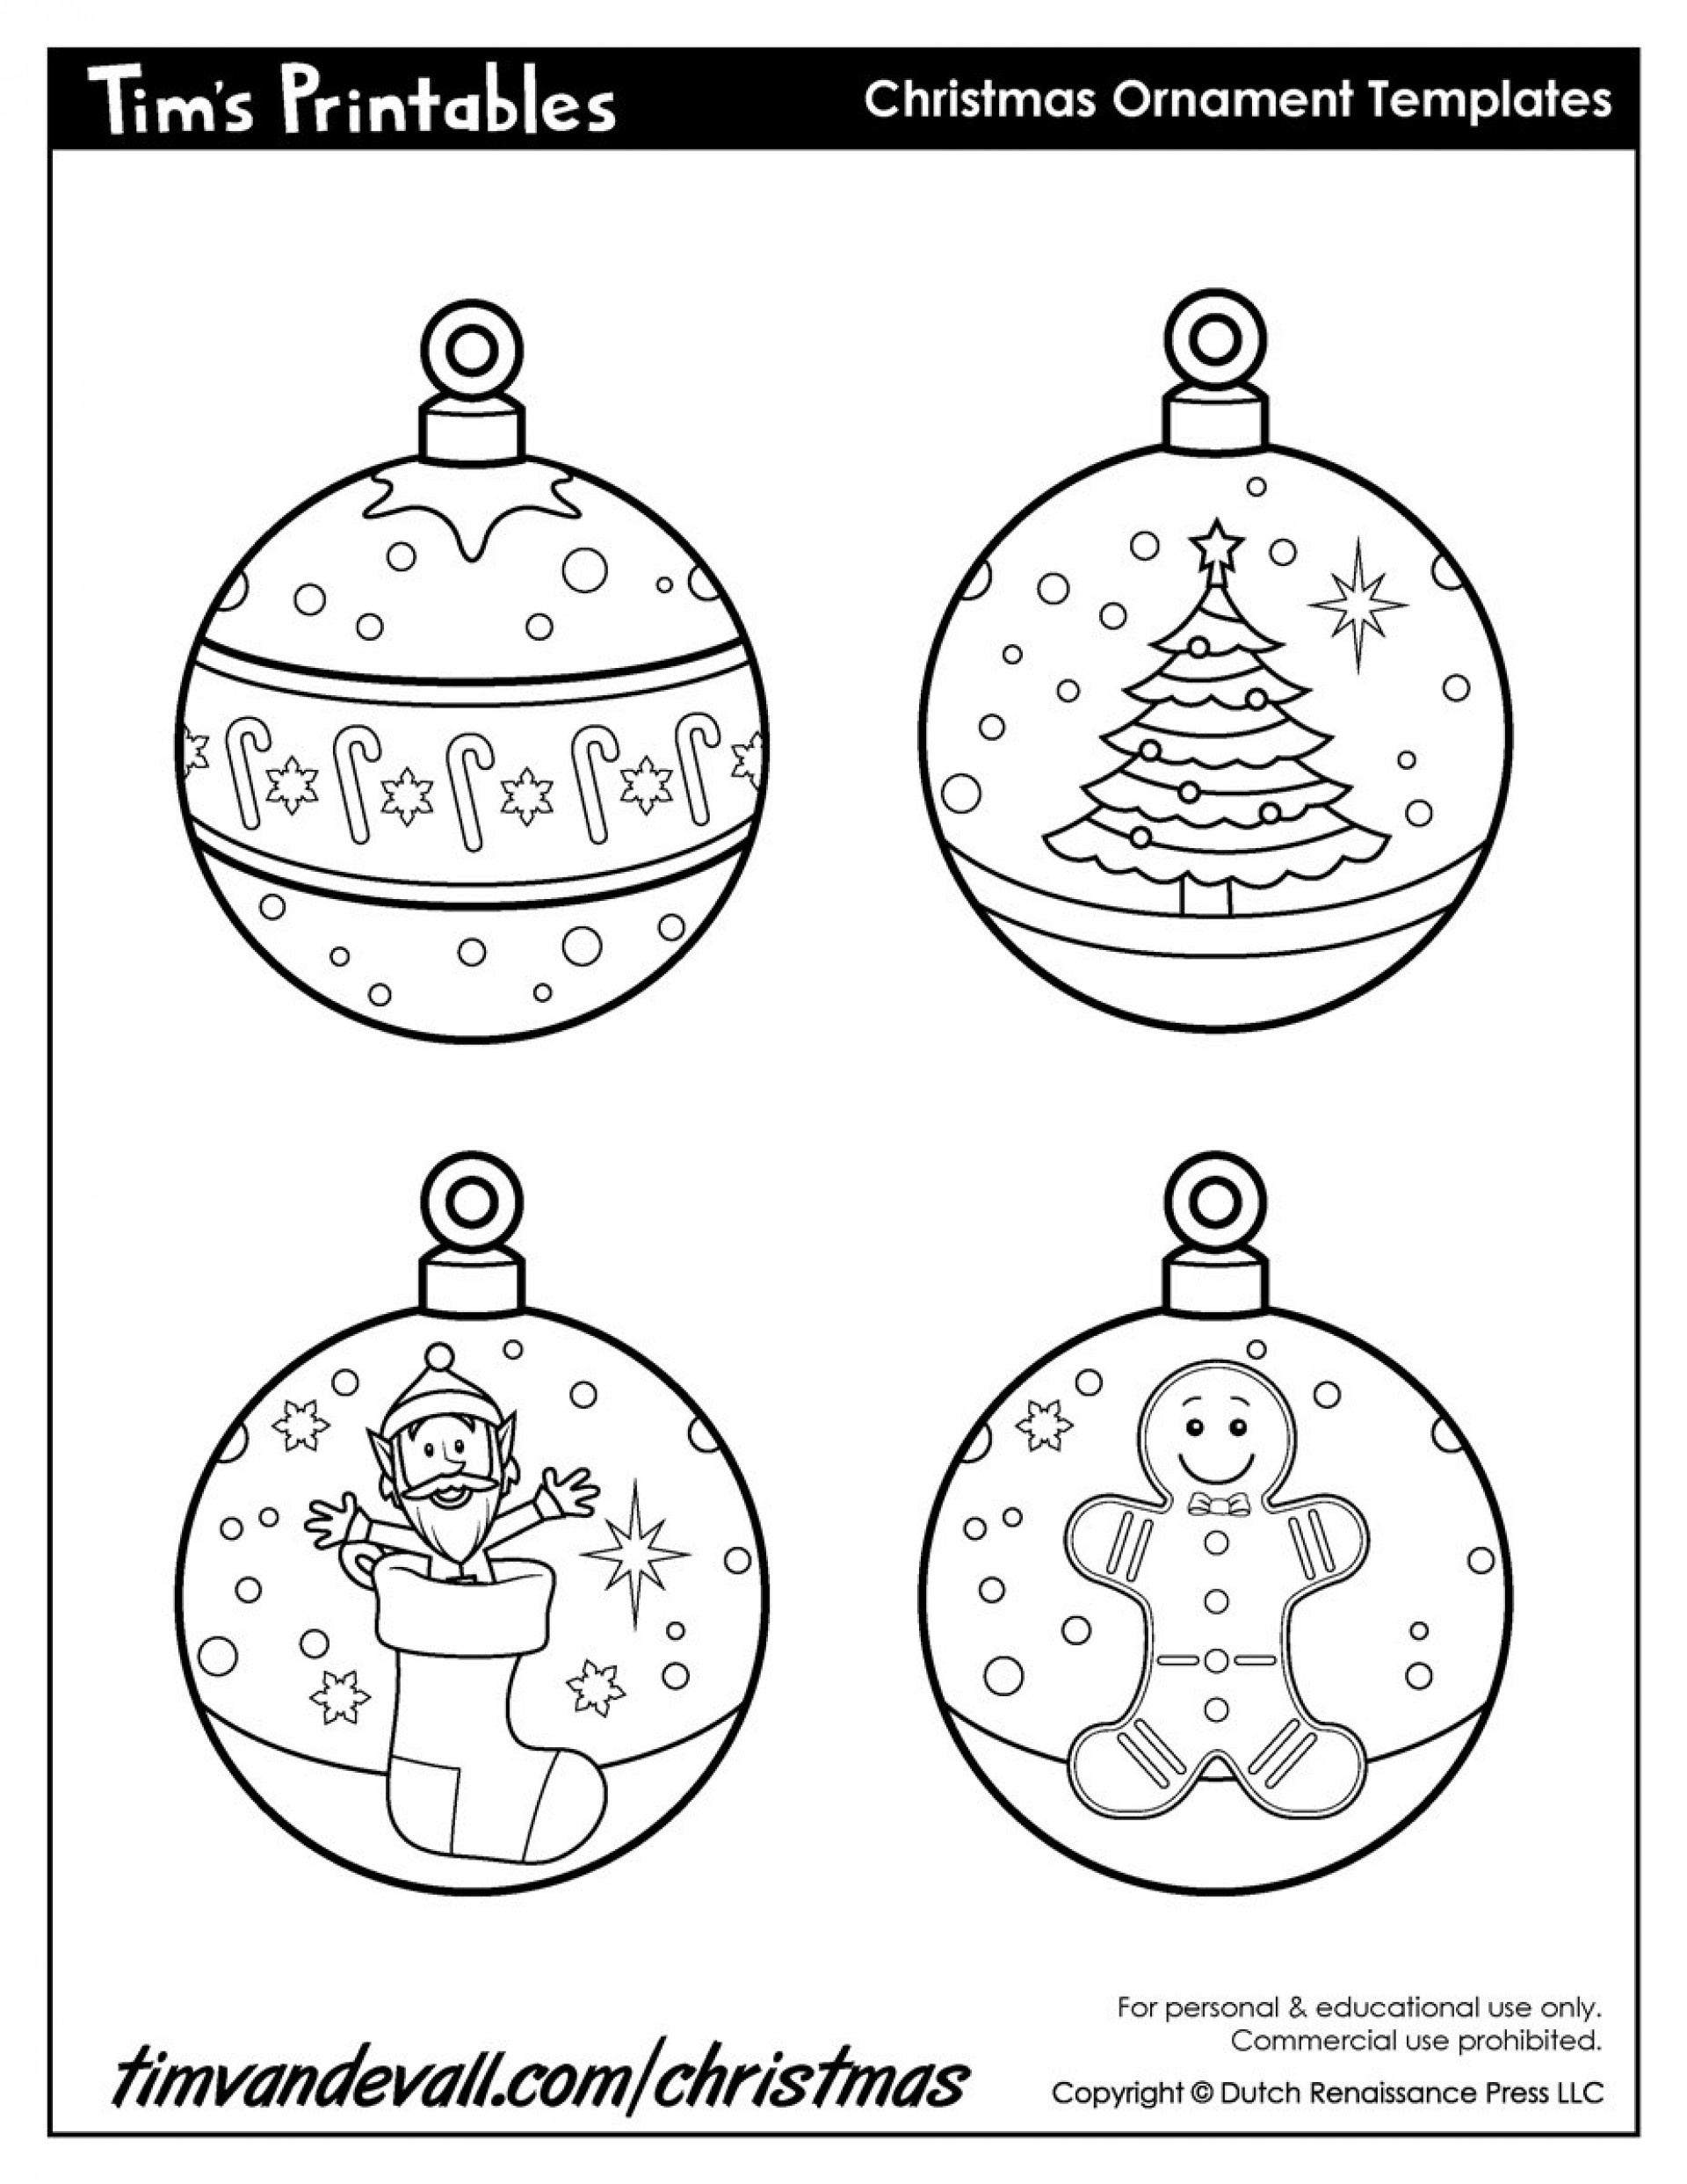 005 Printable Christmas Ornament Templates Paper Ornamentsssl1 - Free Printable Christmas Ornaments